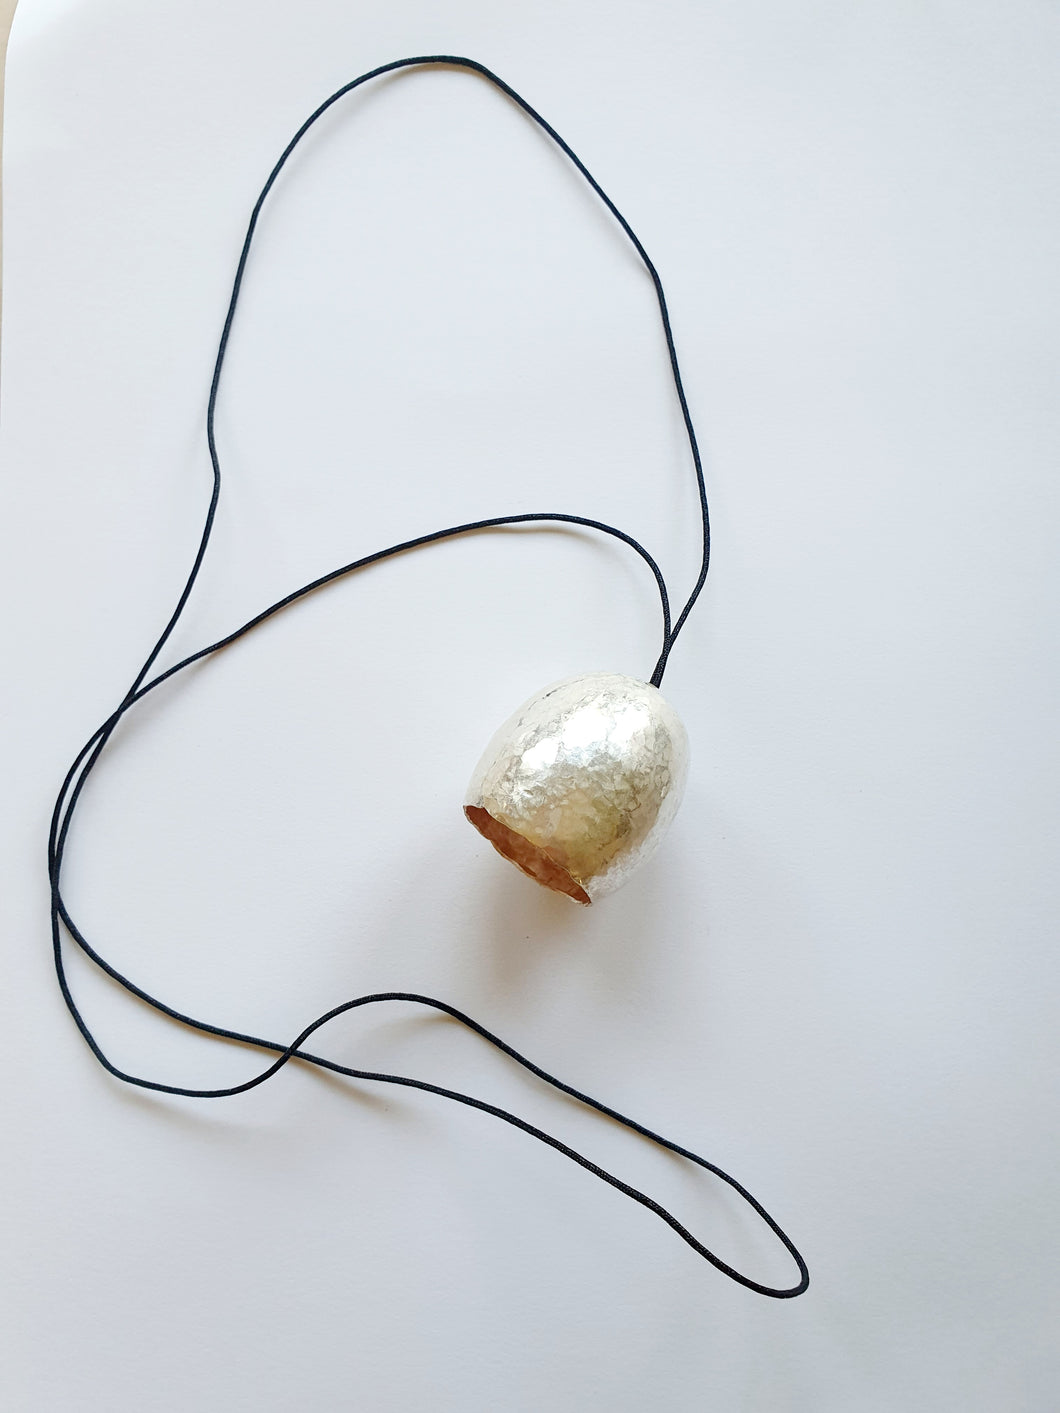 Pendant from the series